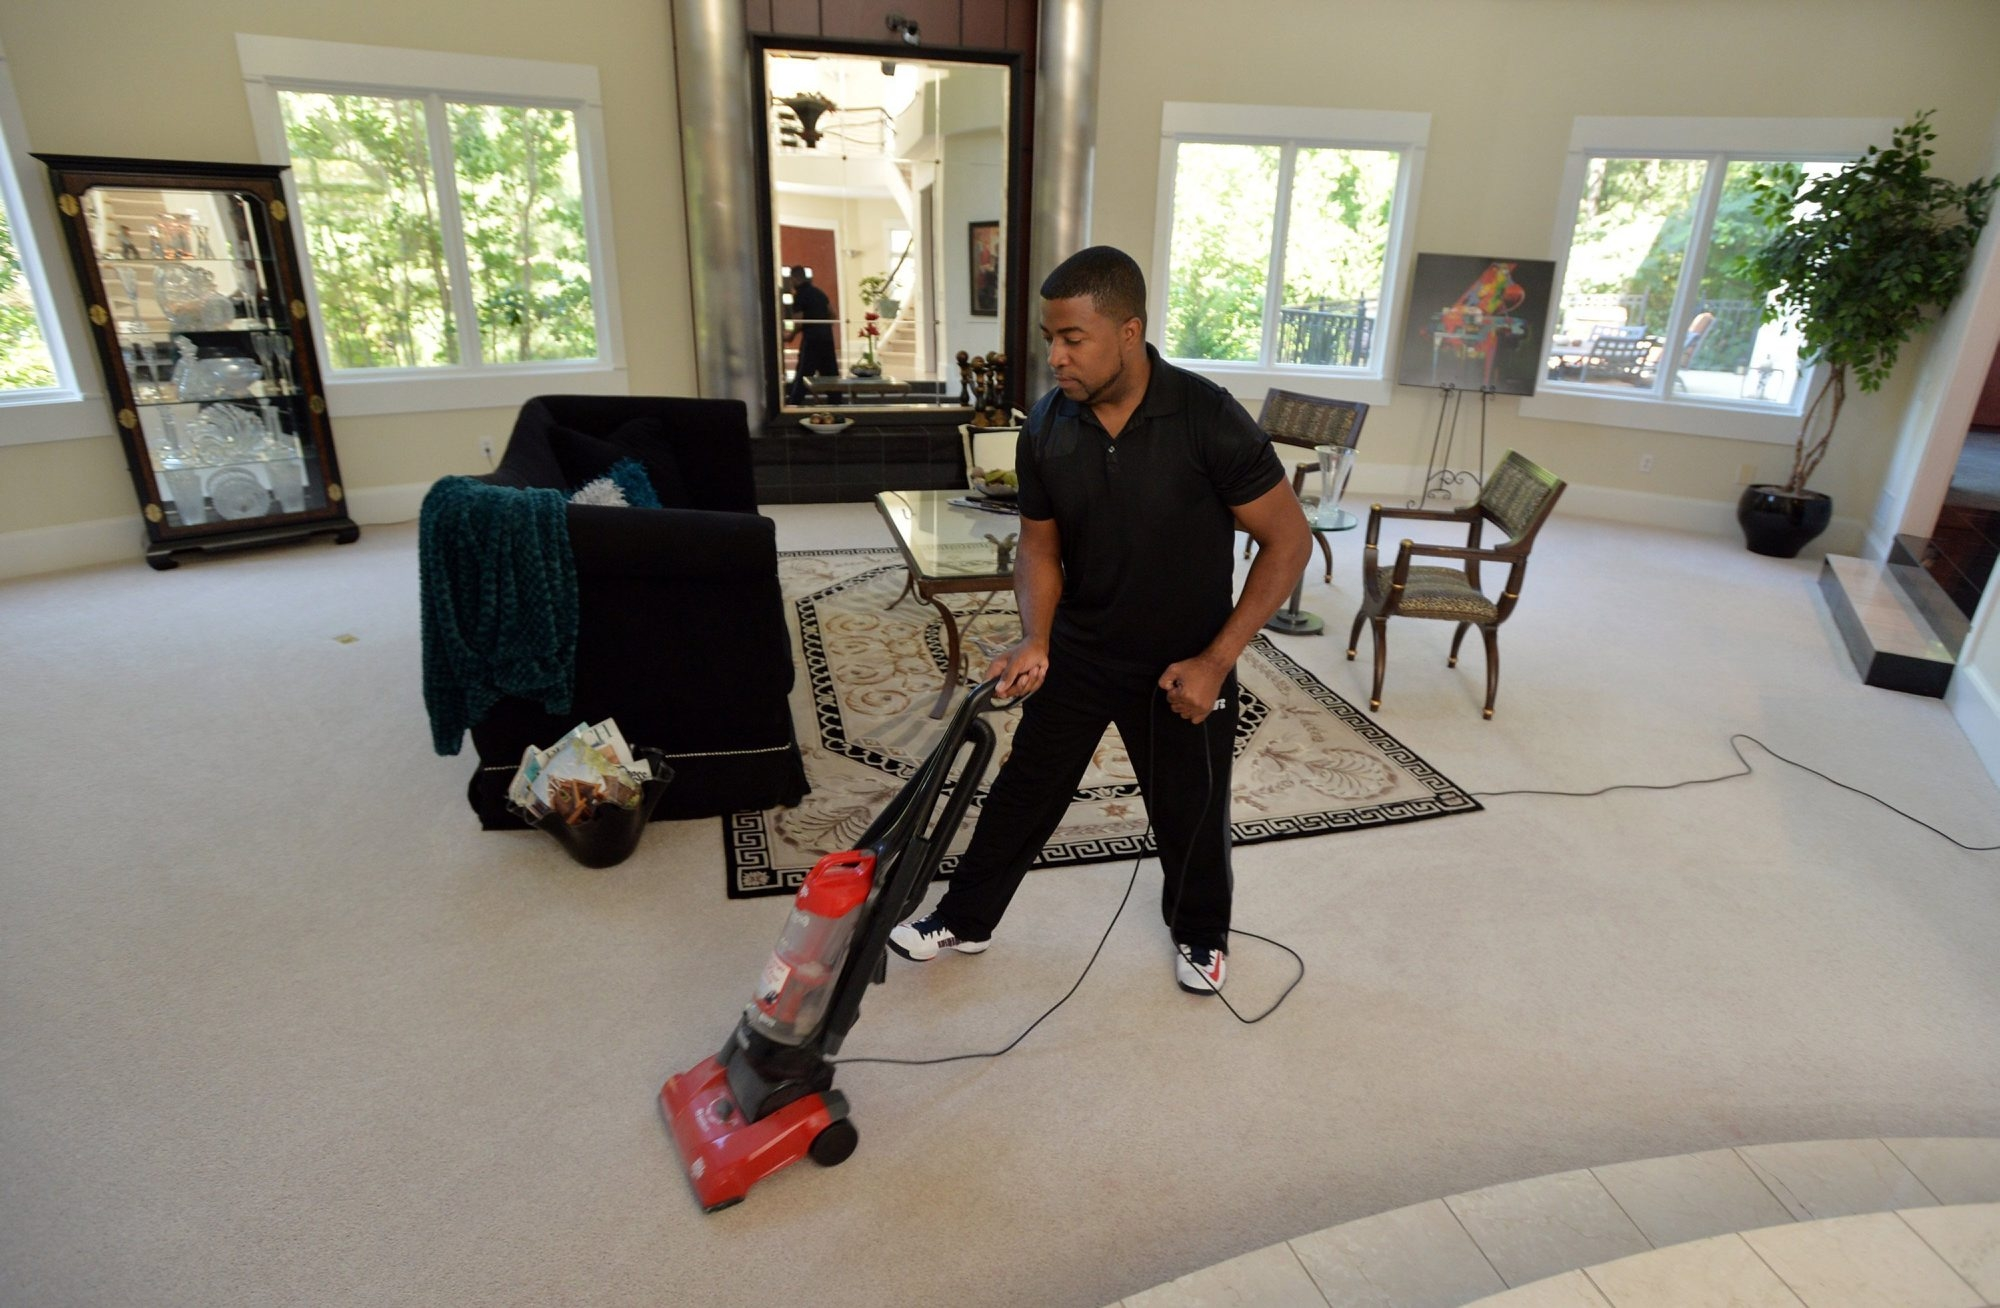 Craig Craft vacuums the carpet in a $1.6 million mansion July 29 in Atlanta. Craft and his roommate Eugene Sullivan are home managers, occupying vacant homes to give them a lived-in look.